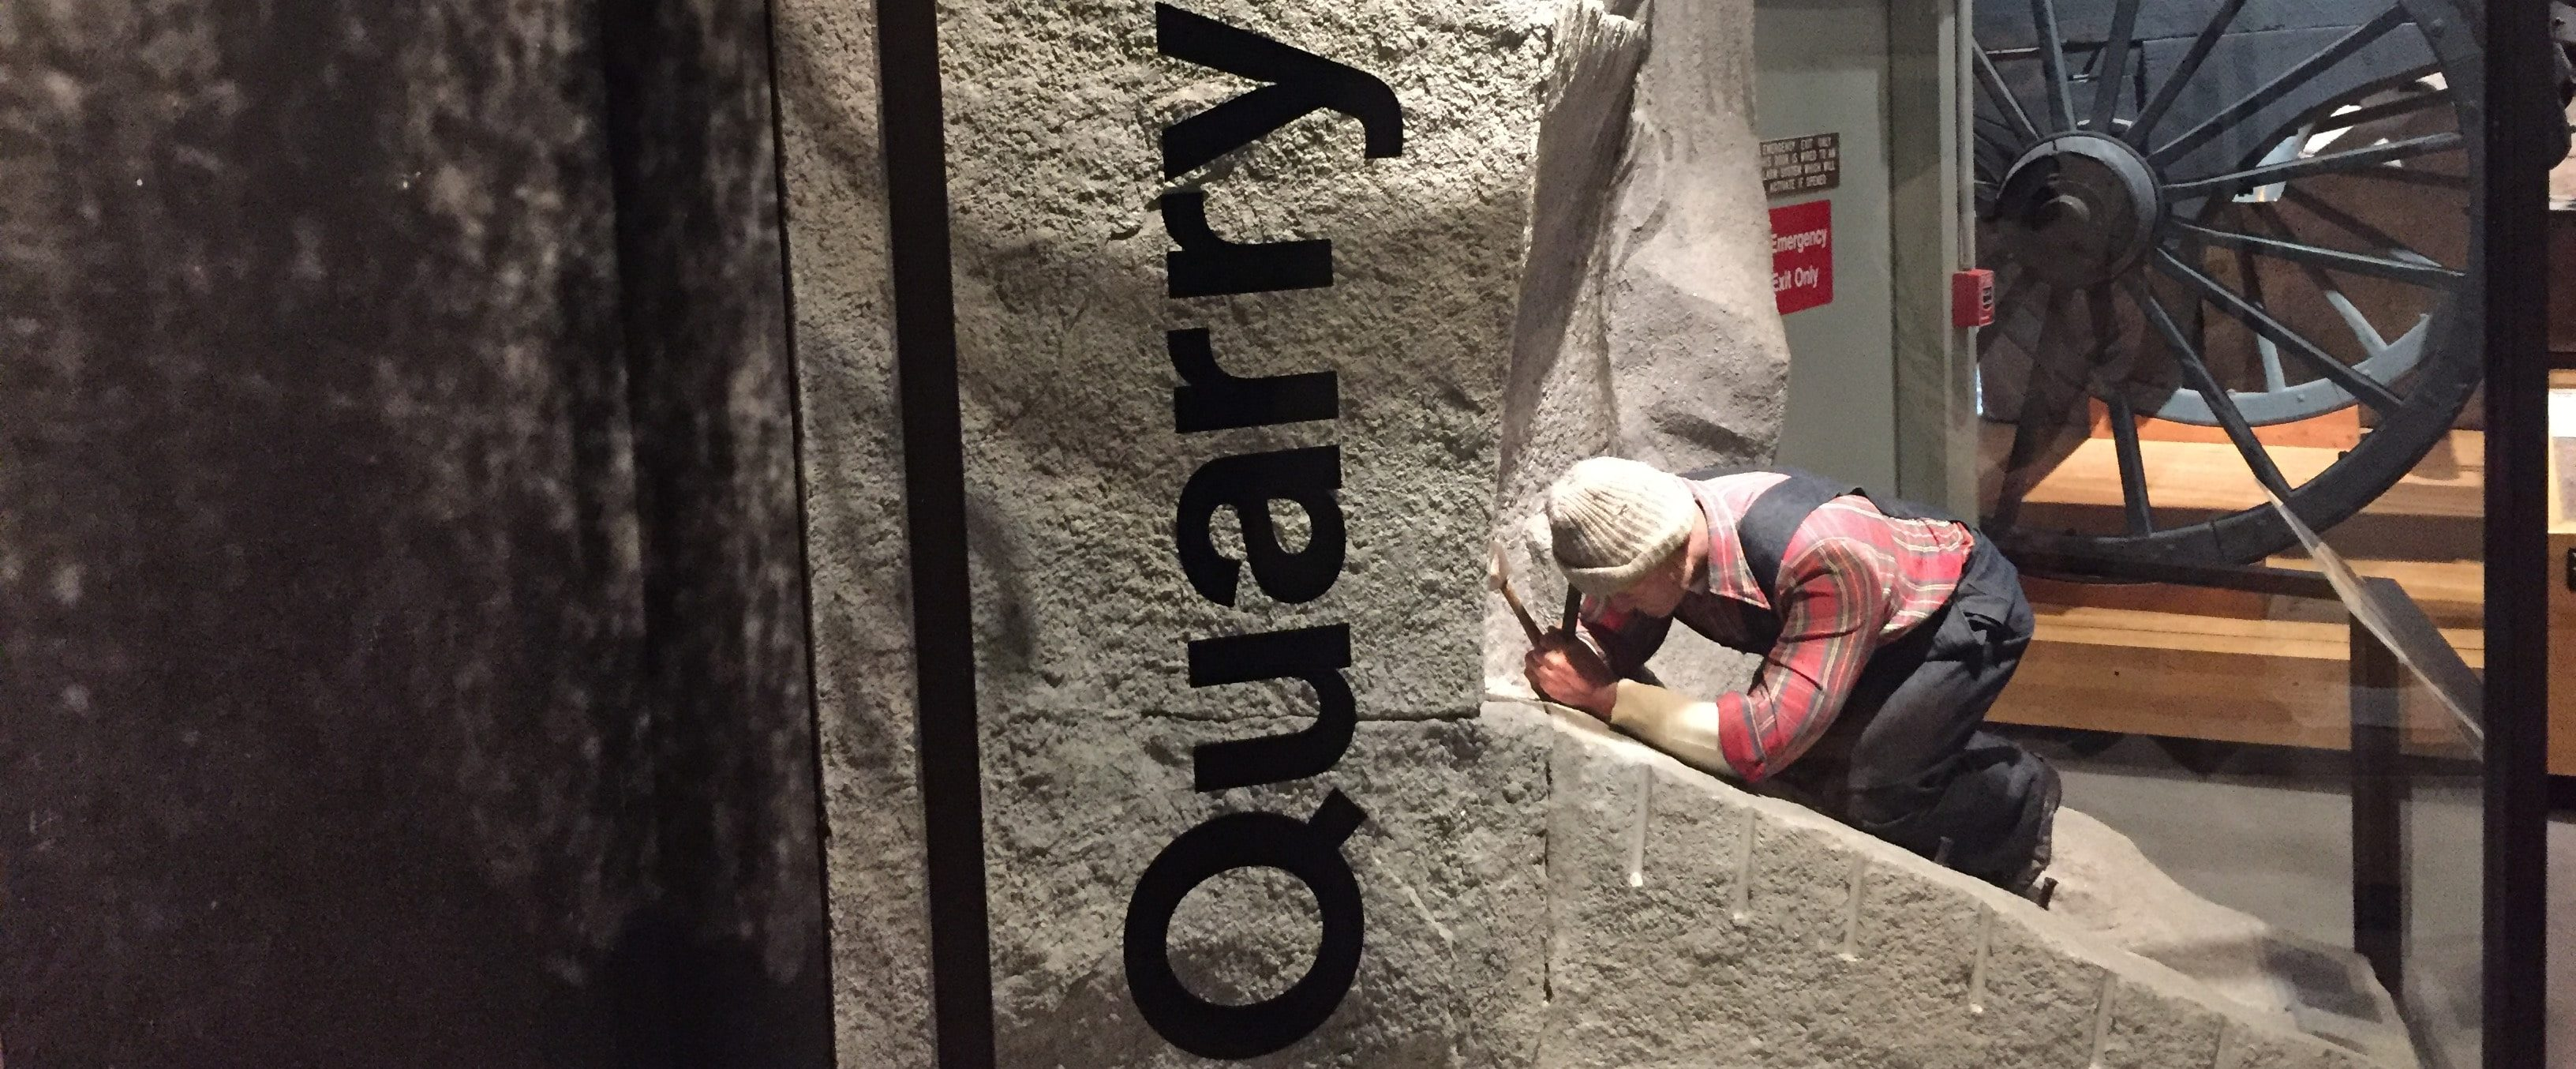 Granite exhibit in the museum, including a man working on a block of granite.